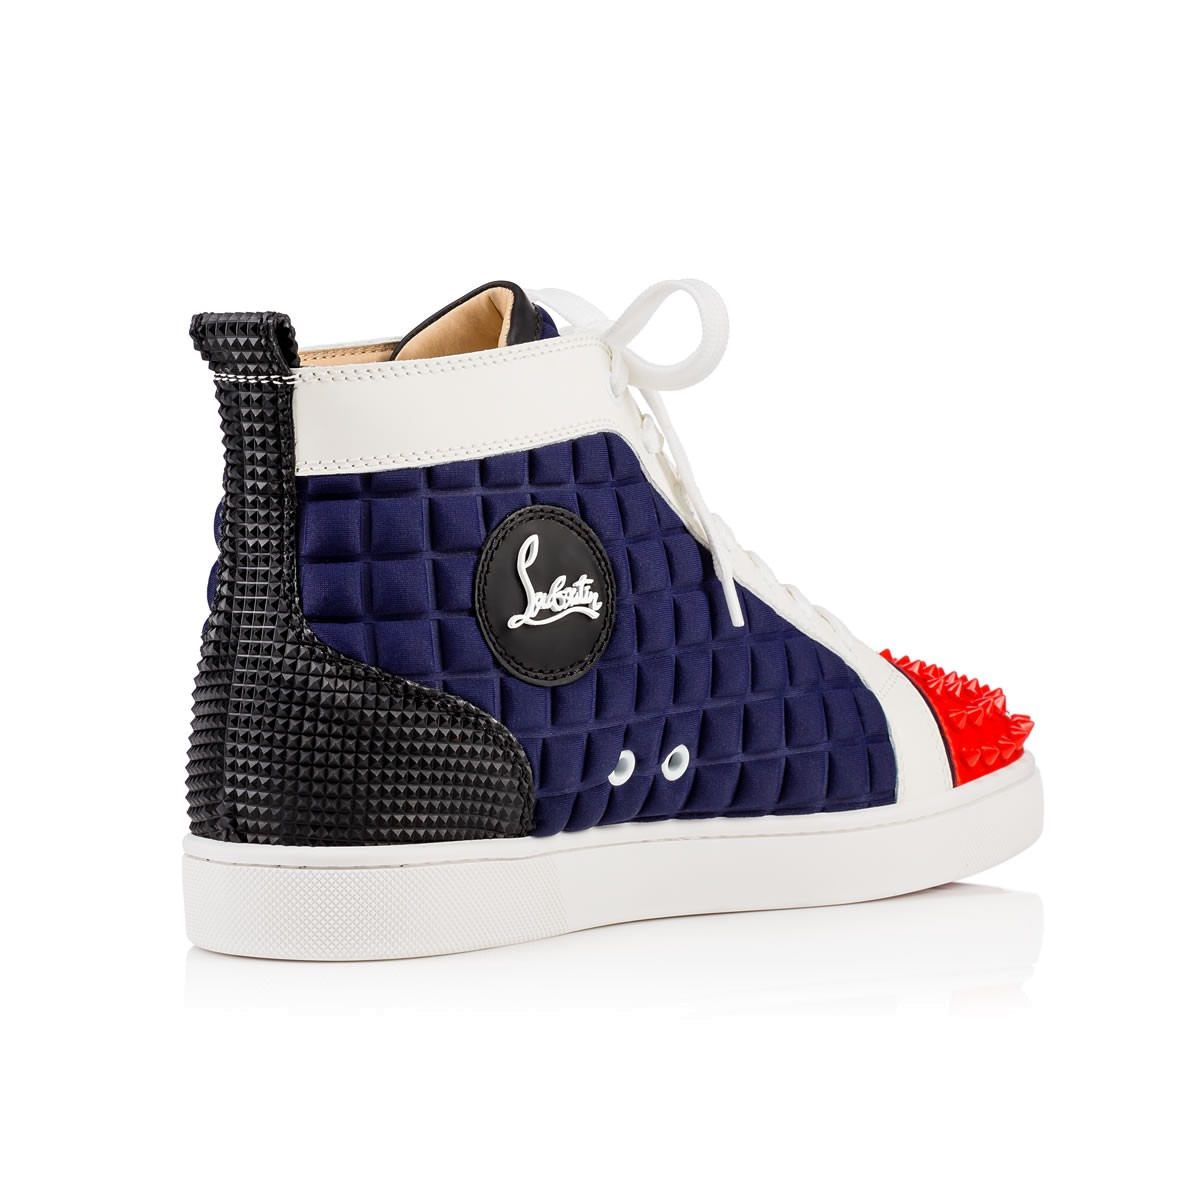 020f84adc2c5 Lyst - Christian Louboutin Lou Spikes Neoprene High-Top Sneakers in Blue  for Men